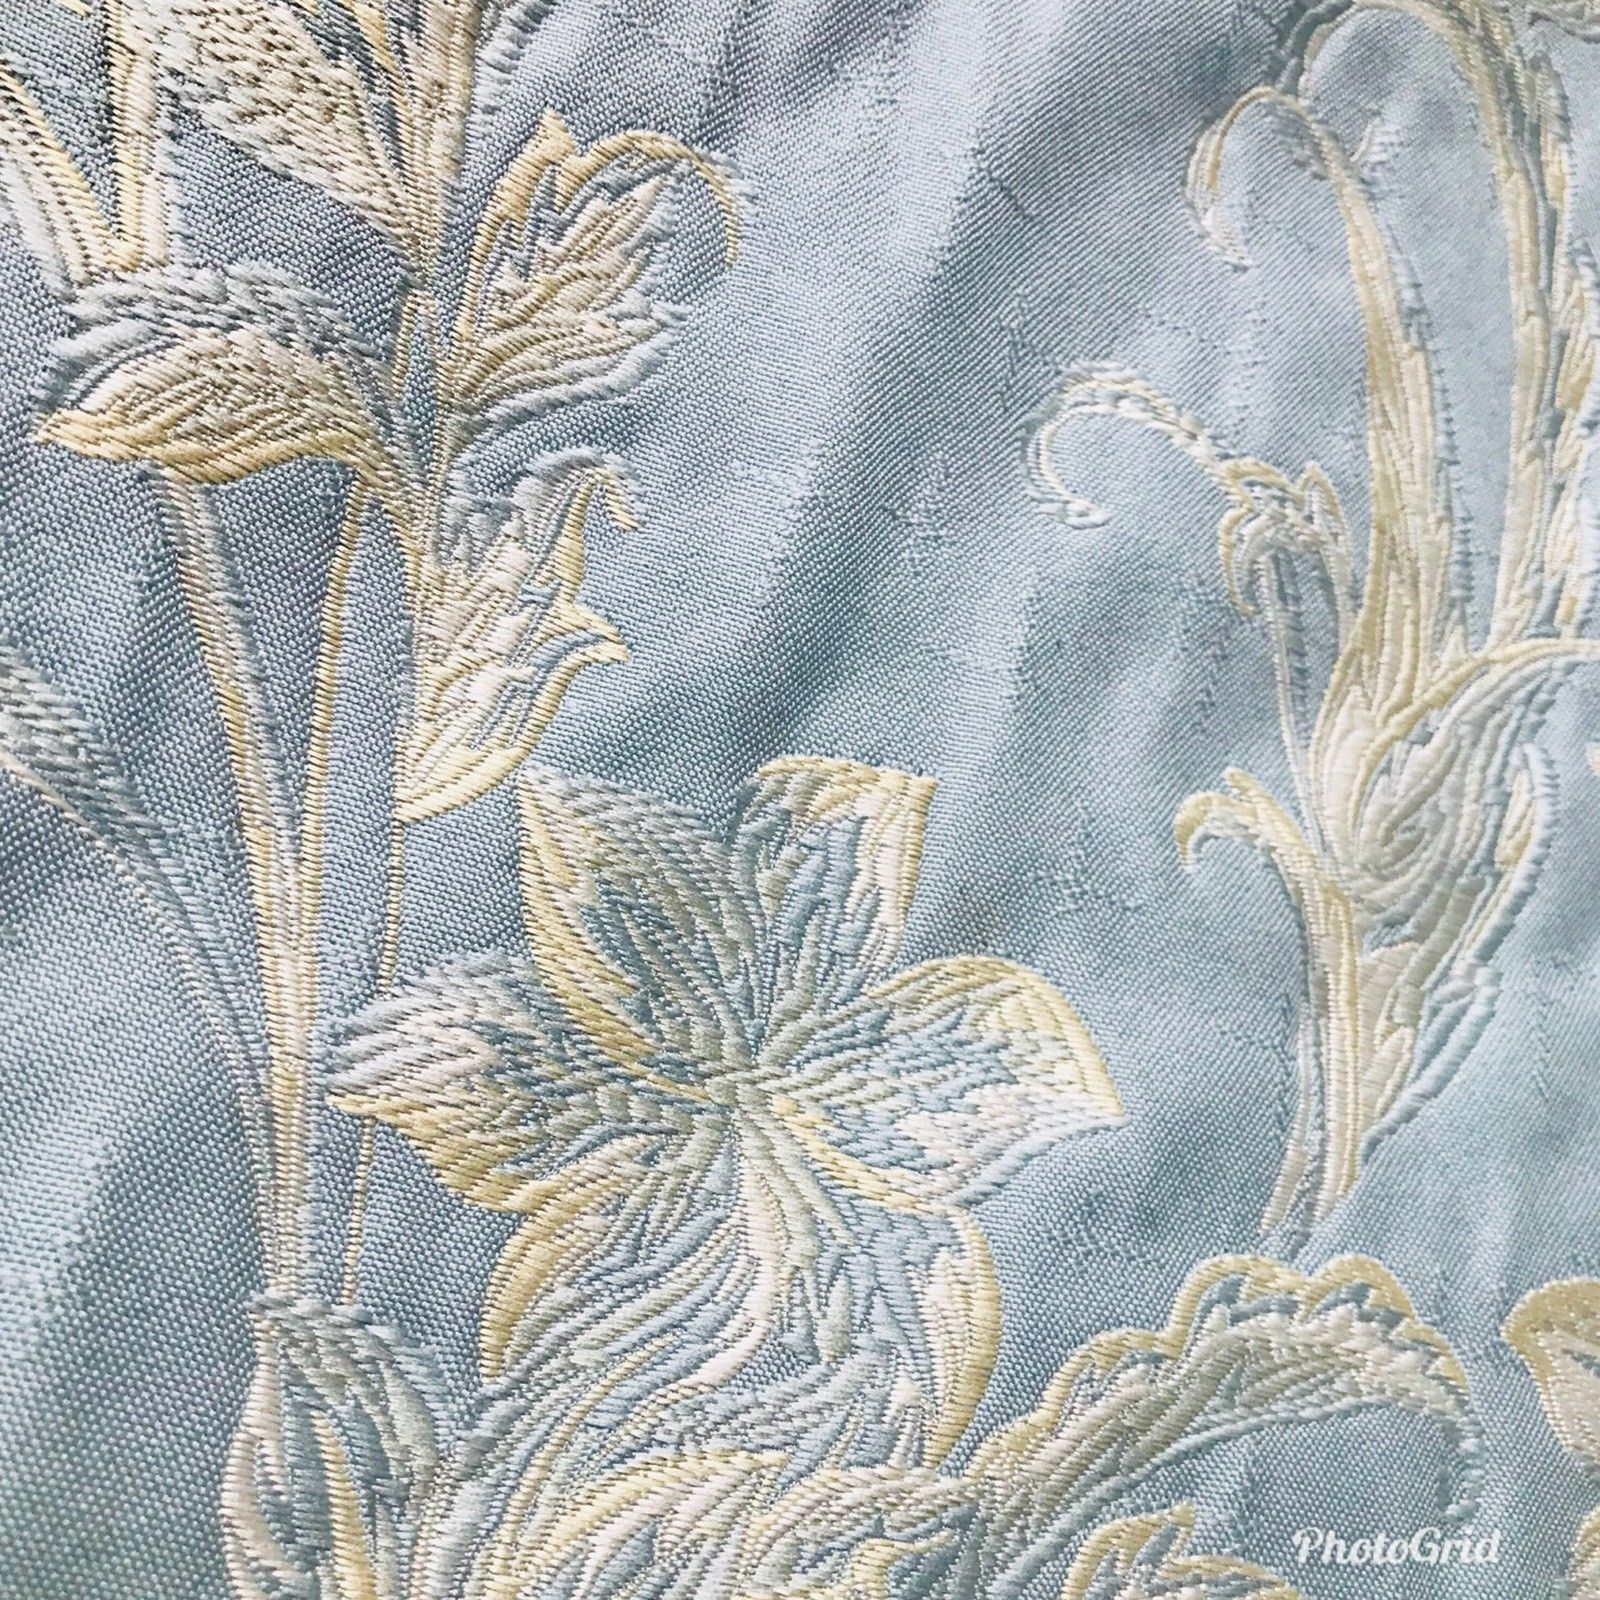 "SWATCH 4"" X 7"" - Quilted Brocade Floral Upholstery Fabric- Antique Blue - Fancy Styles Fabric Boutique"